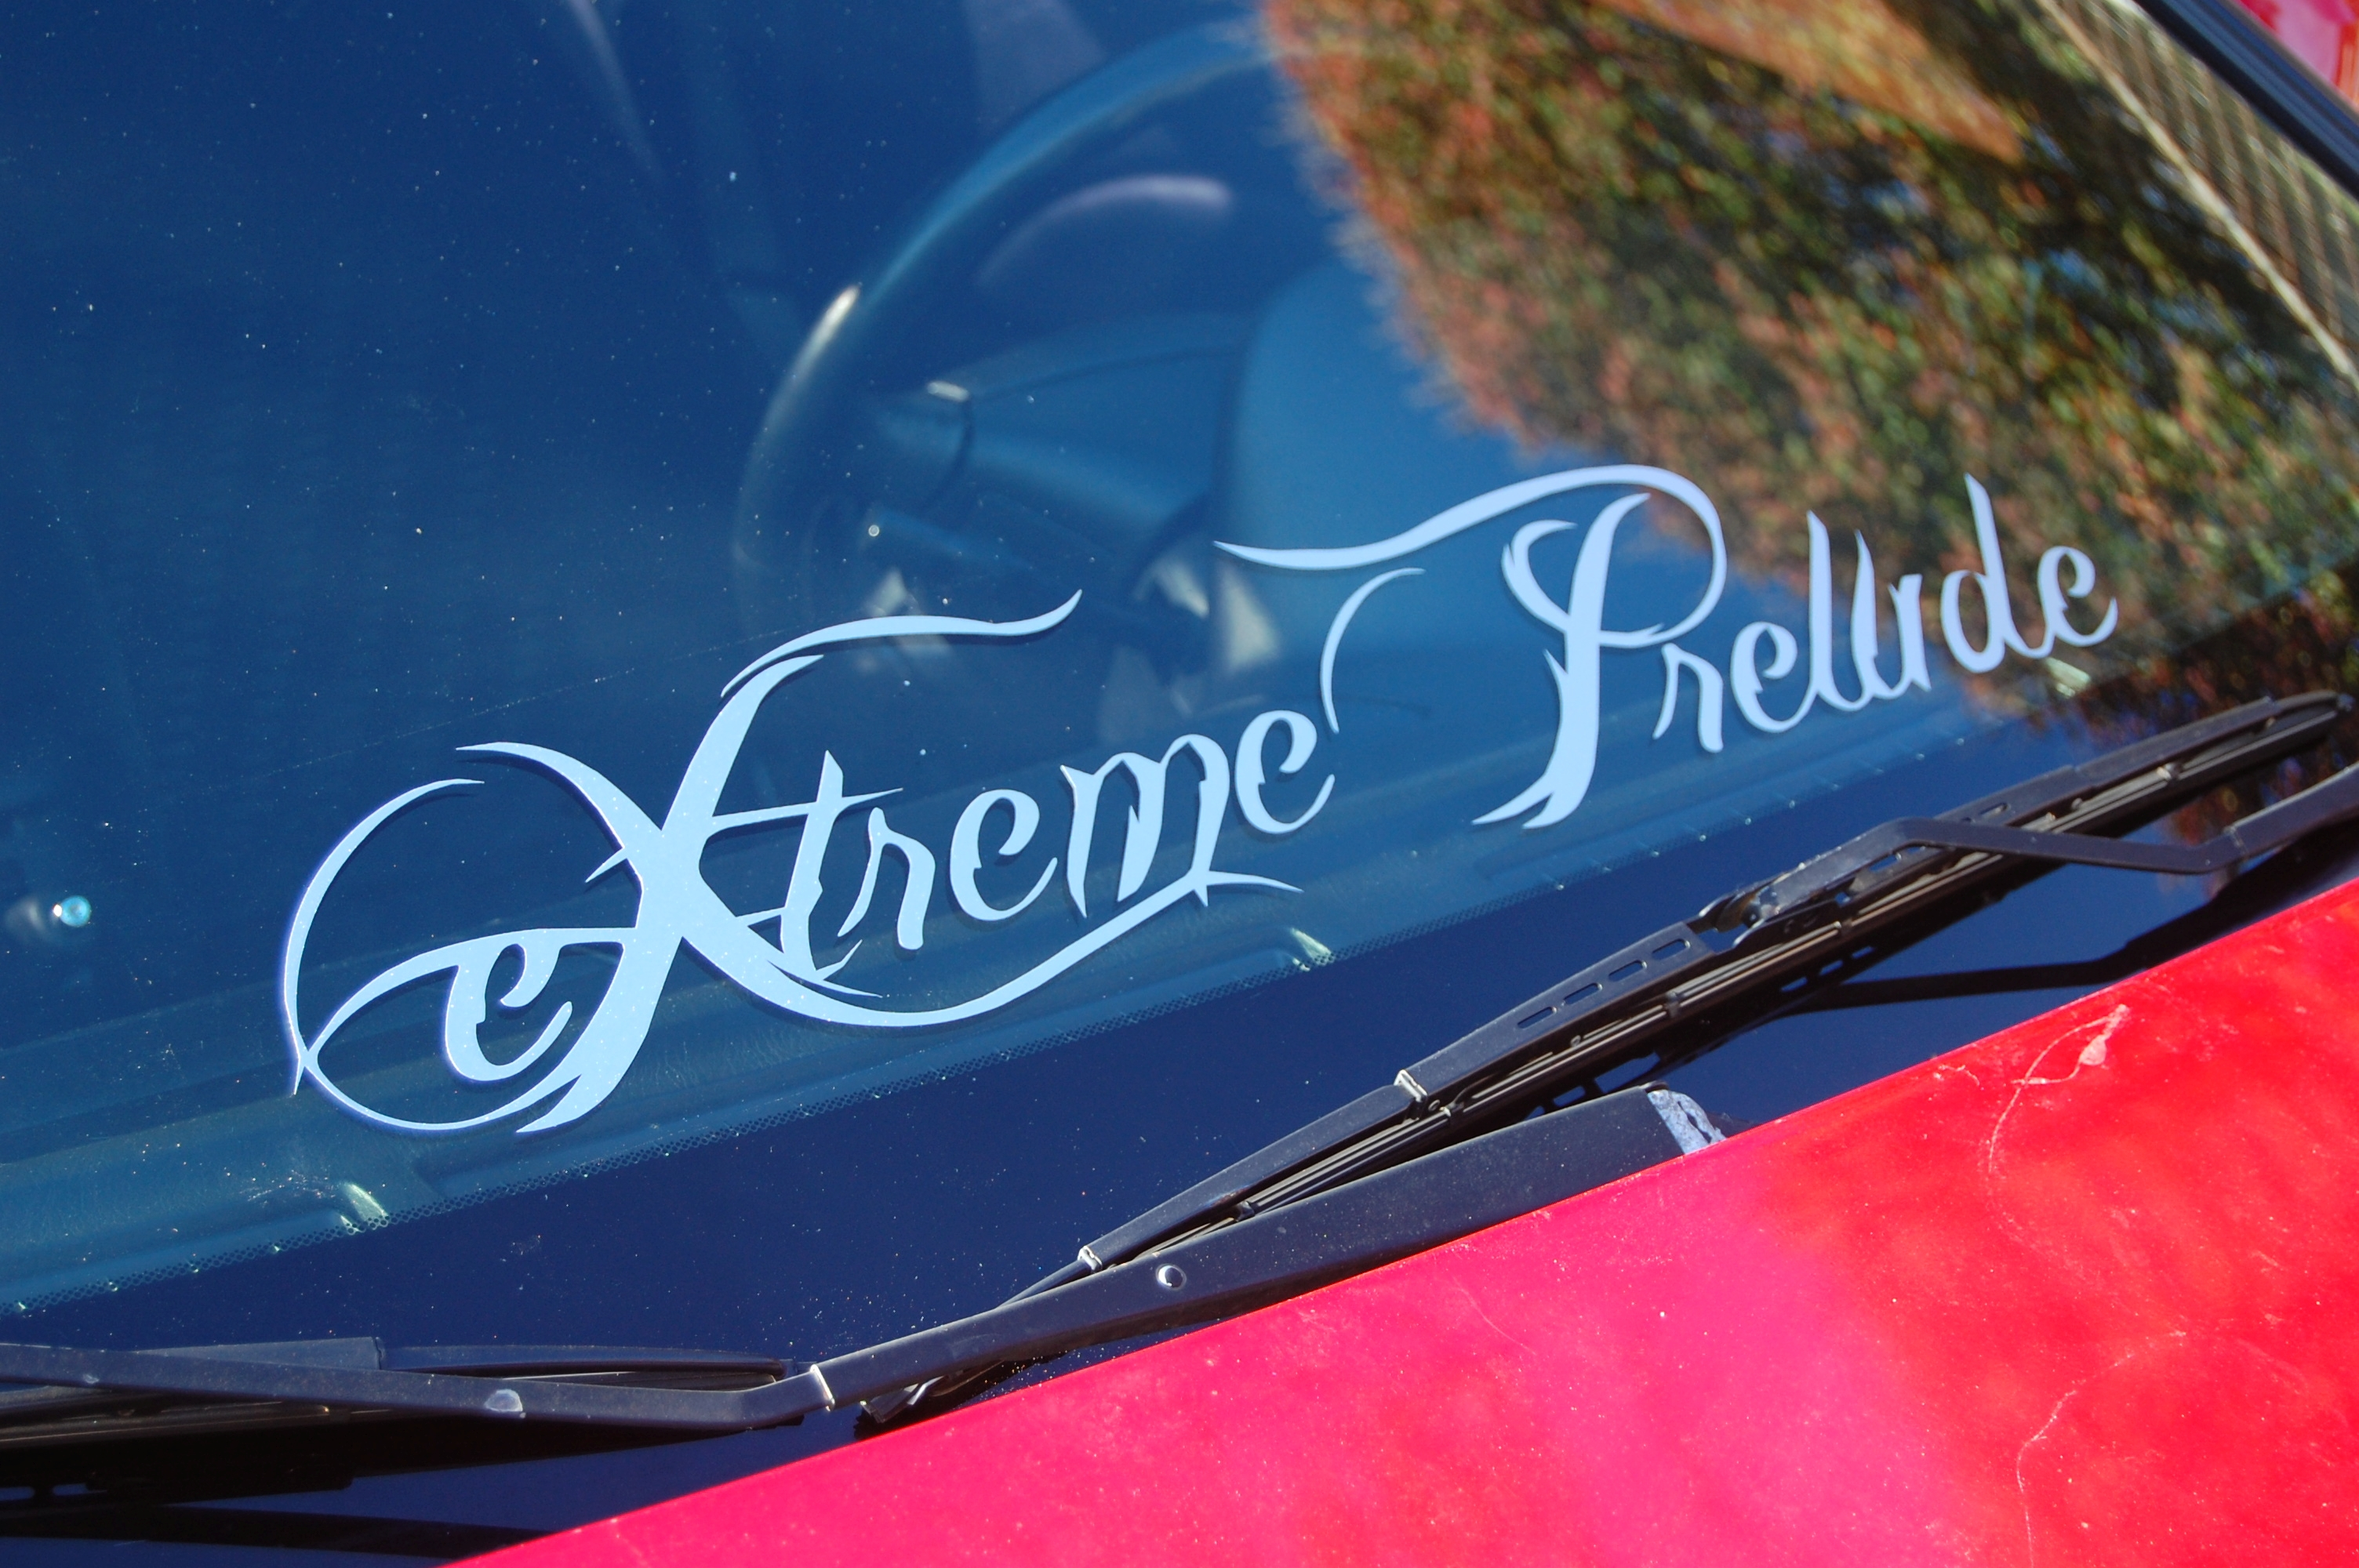 Custom Windshield Decal Giveaway EXtremePrelude Blog - Car windshield decals customcustom window decals